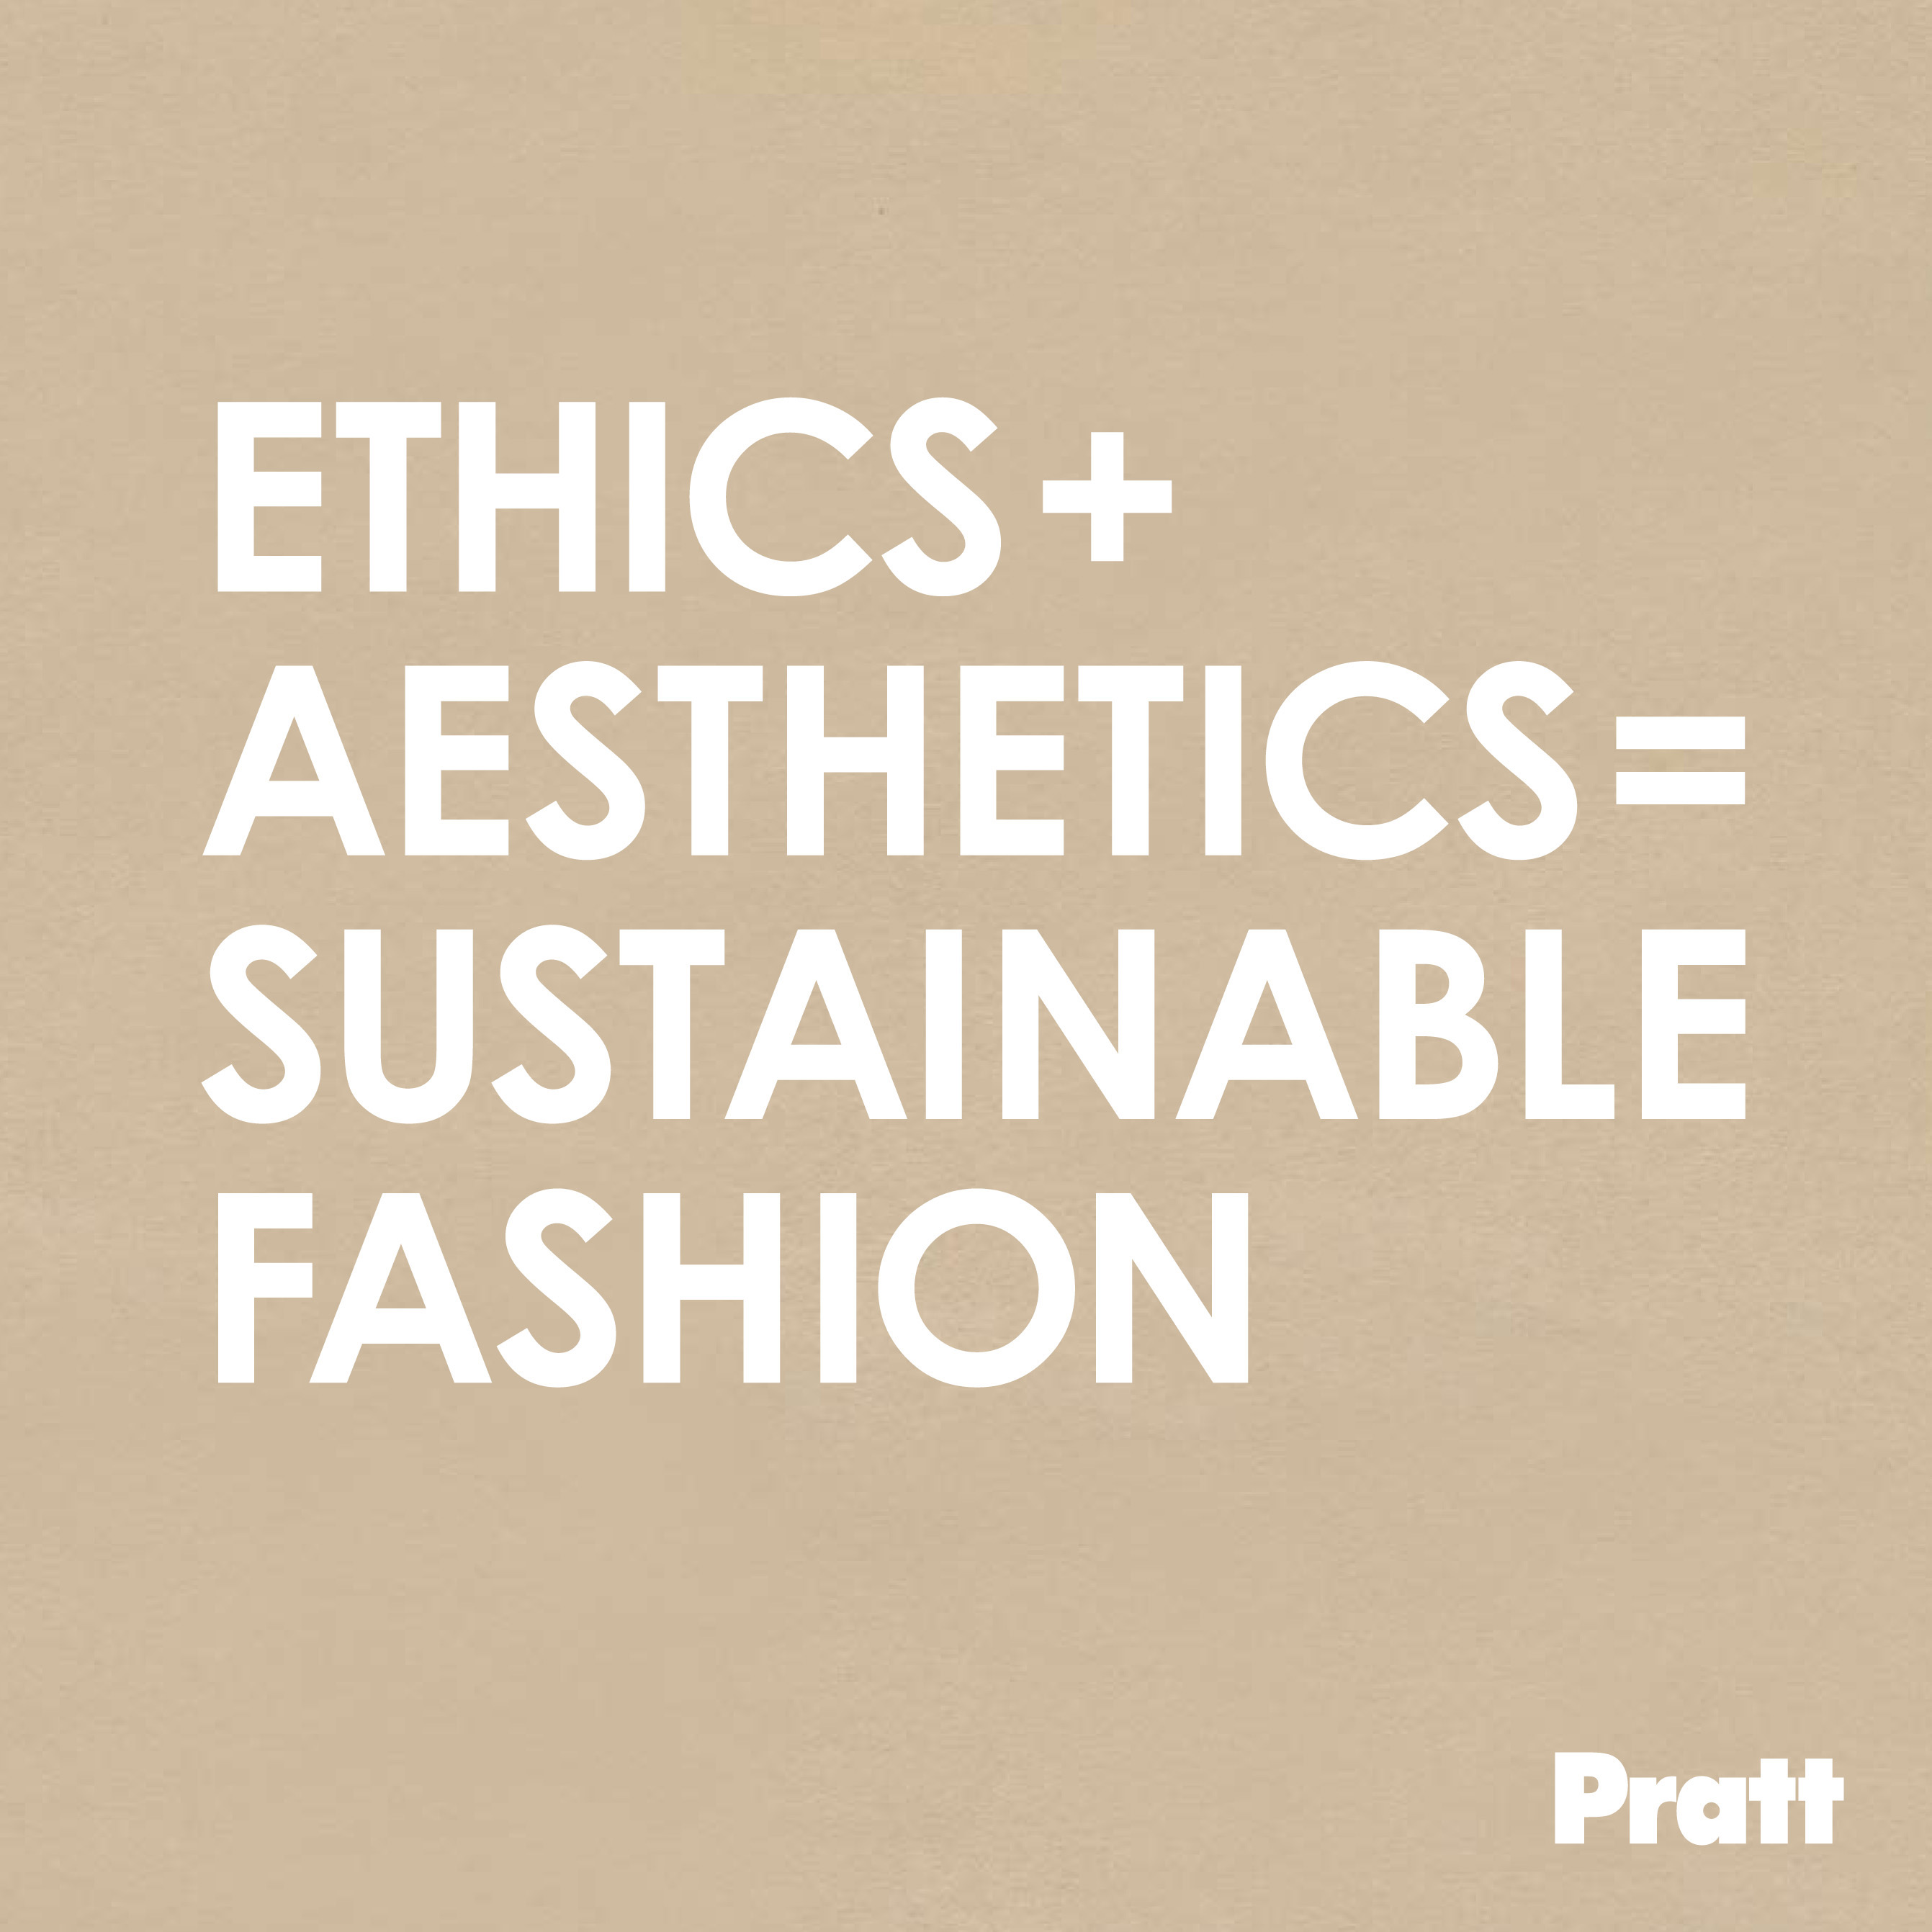 Ethics + Aesthetics = Sustainable Fashion catalog cover